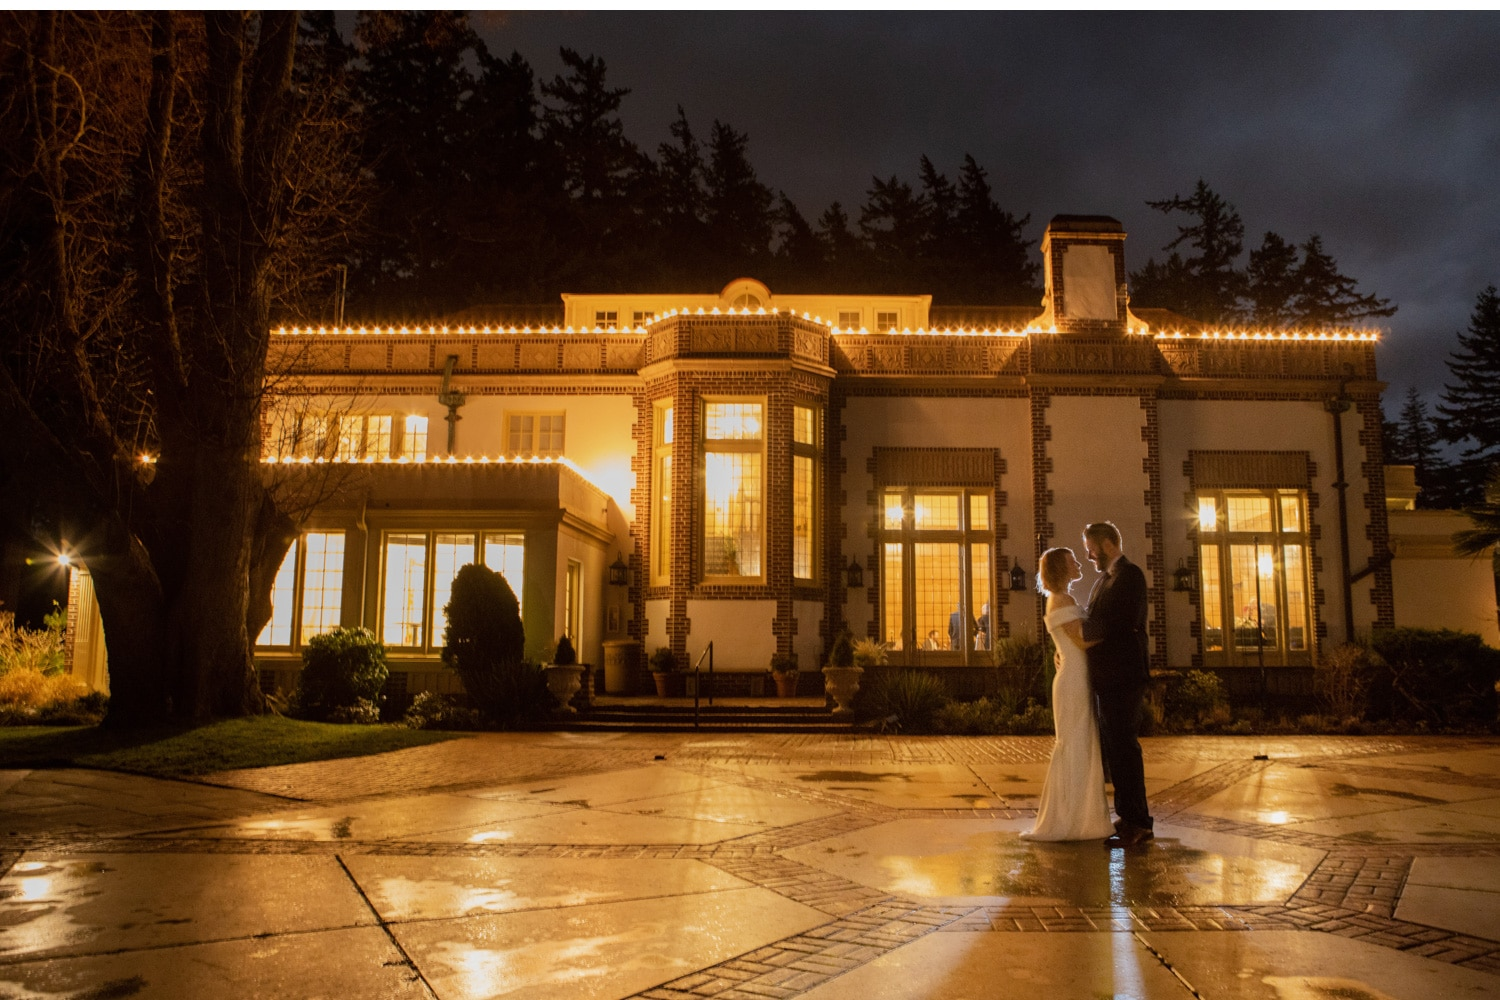 lairmont Manor wedding venue inspiration photo for bellingham photographer night portrait rim light